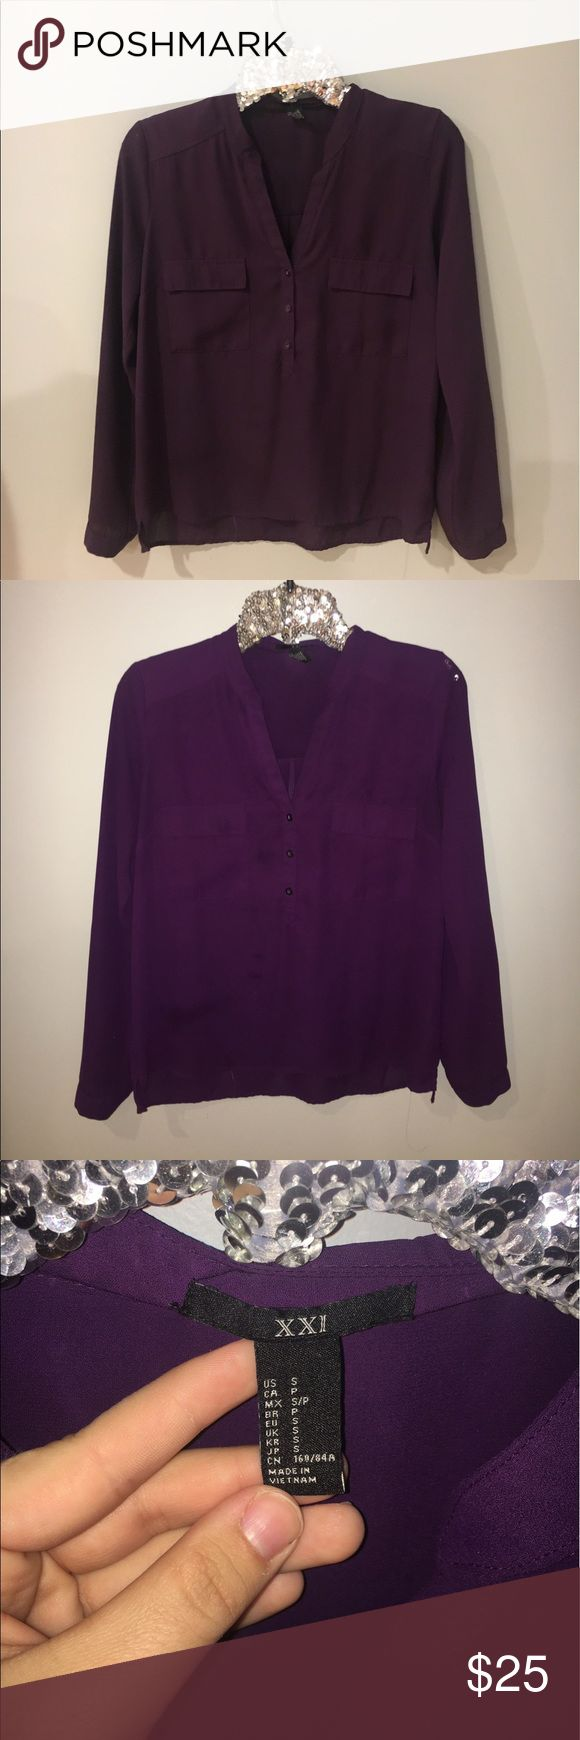 Purple Women's Blouse 👚 Woman's purple blouse for sale❤️ If only I was a size small! The fit is comfy with a professional look😍 Please message me if you have any questions! Forever 21 Tops Blouses